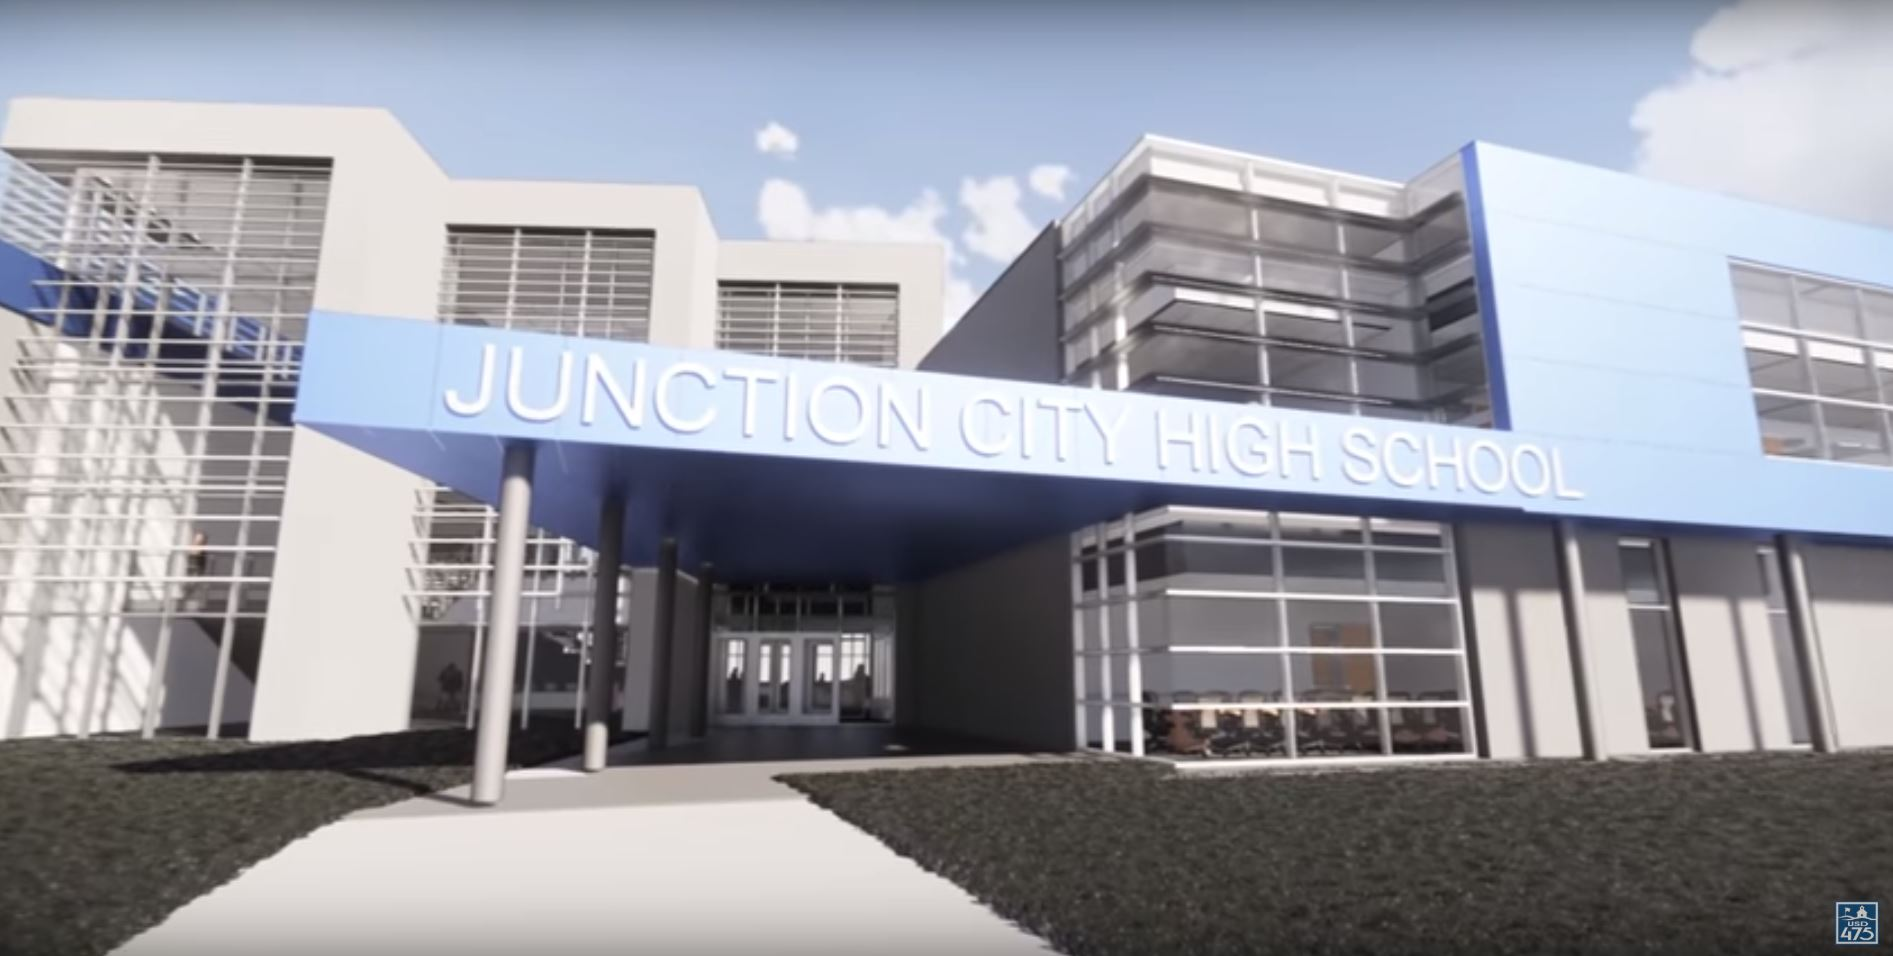 3D rendering of the entry of the new Junction City High School.